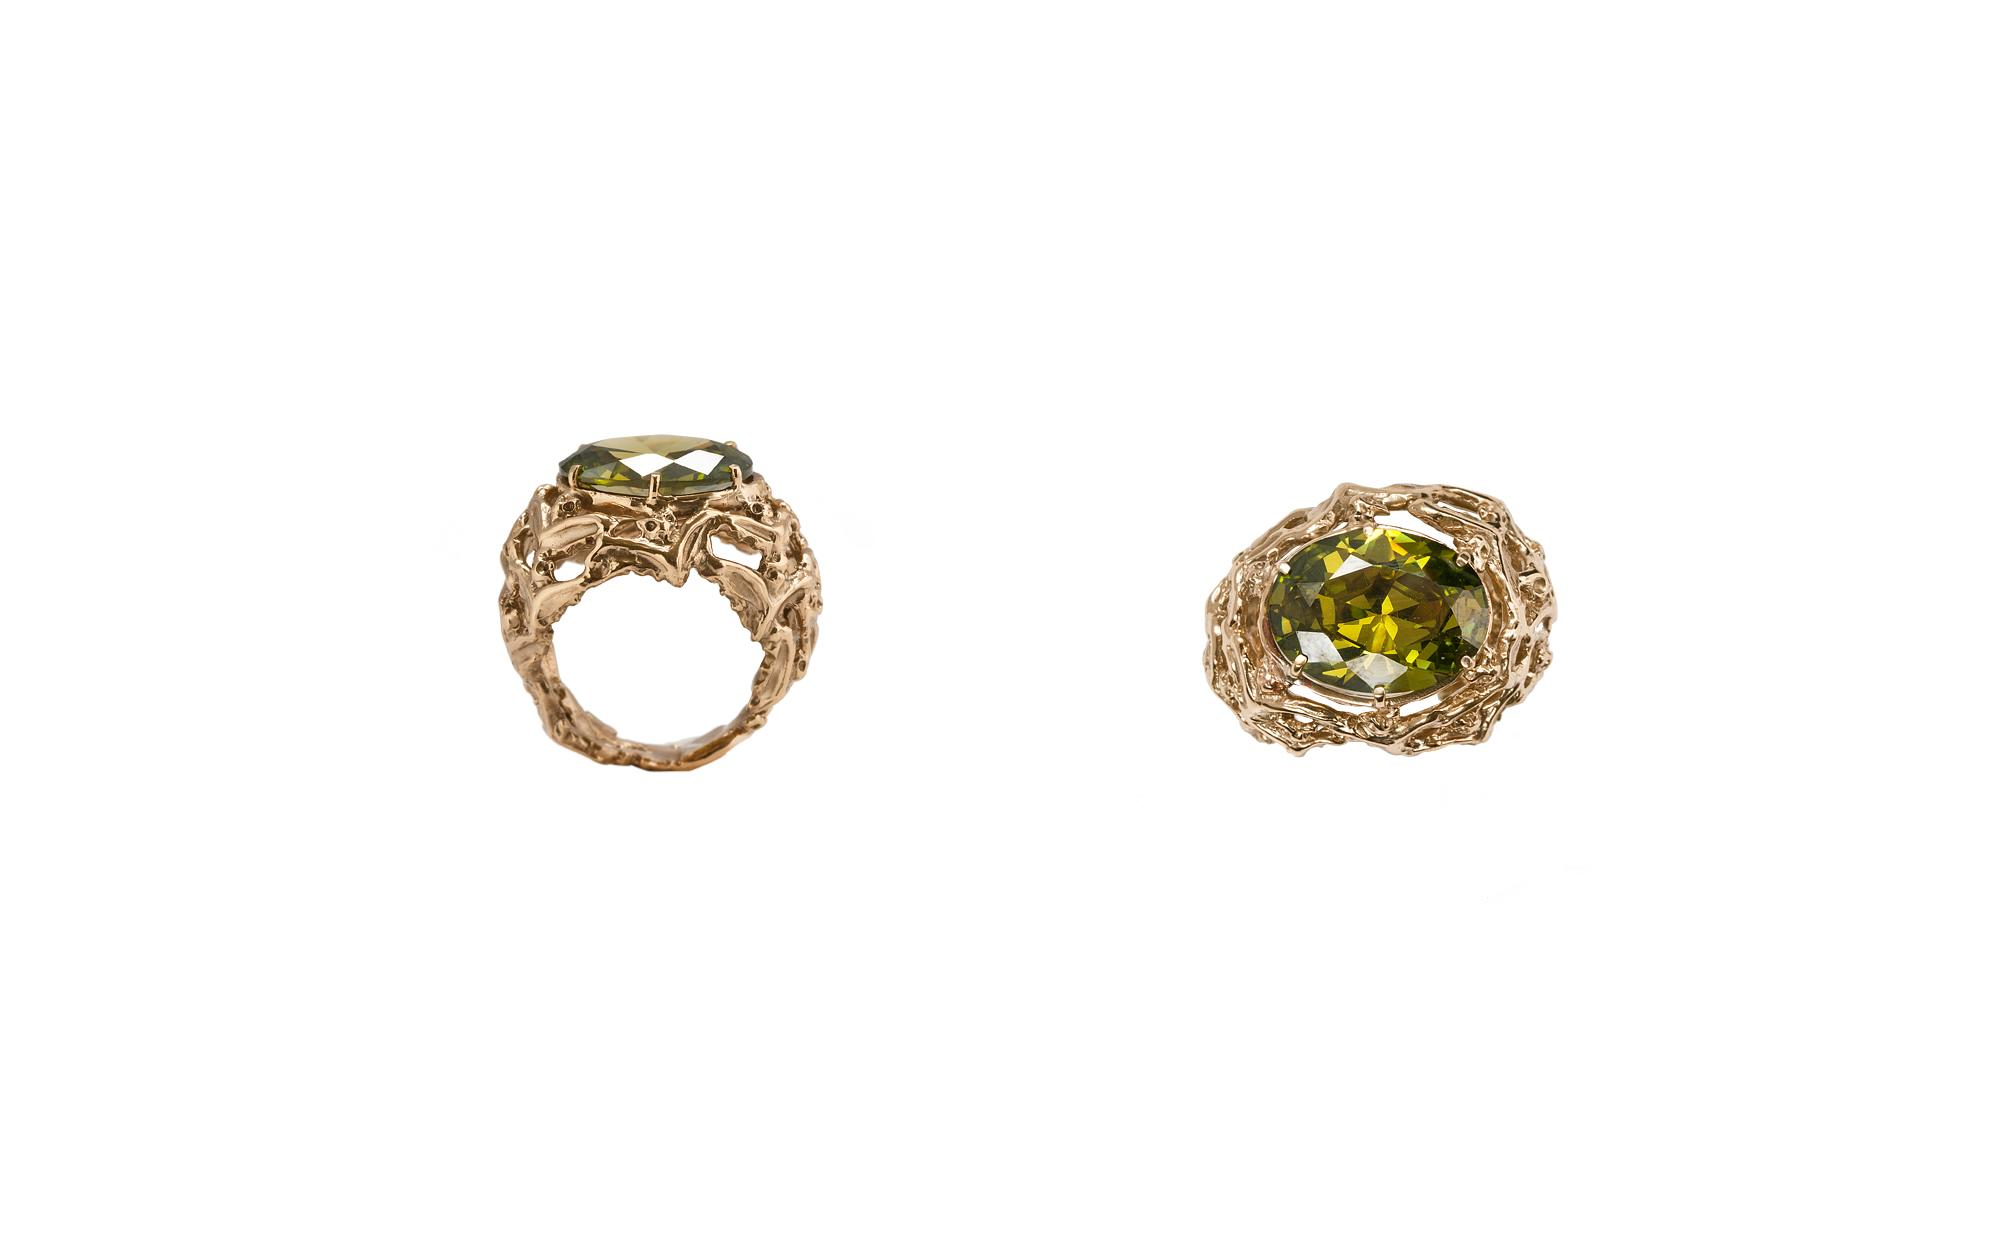 Bronze bats dome ring with green zircon